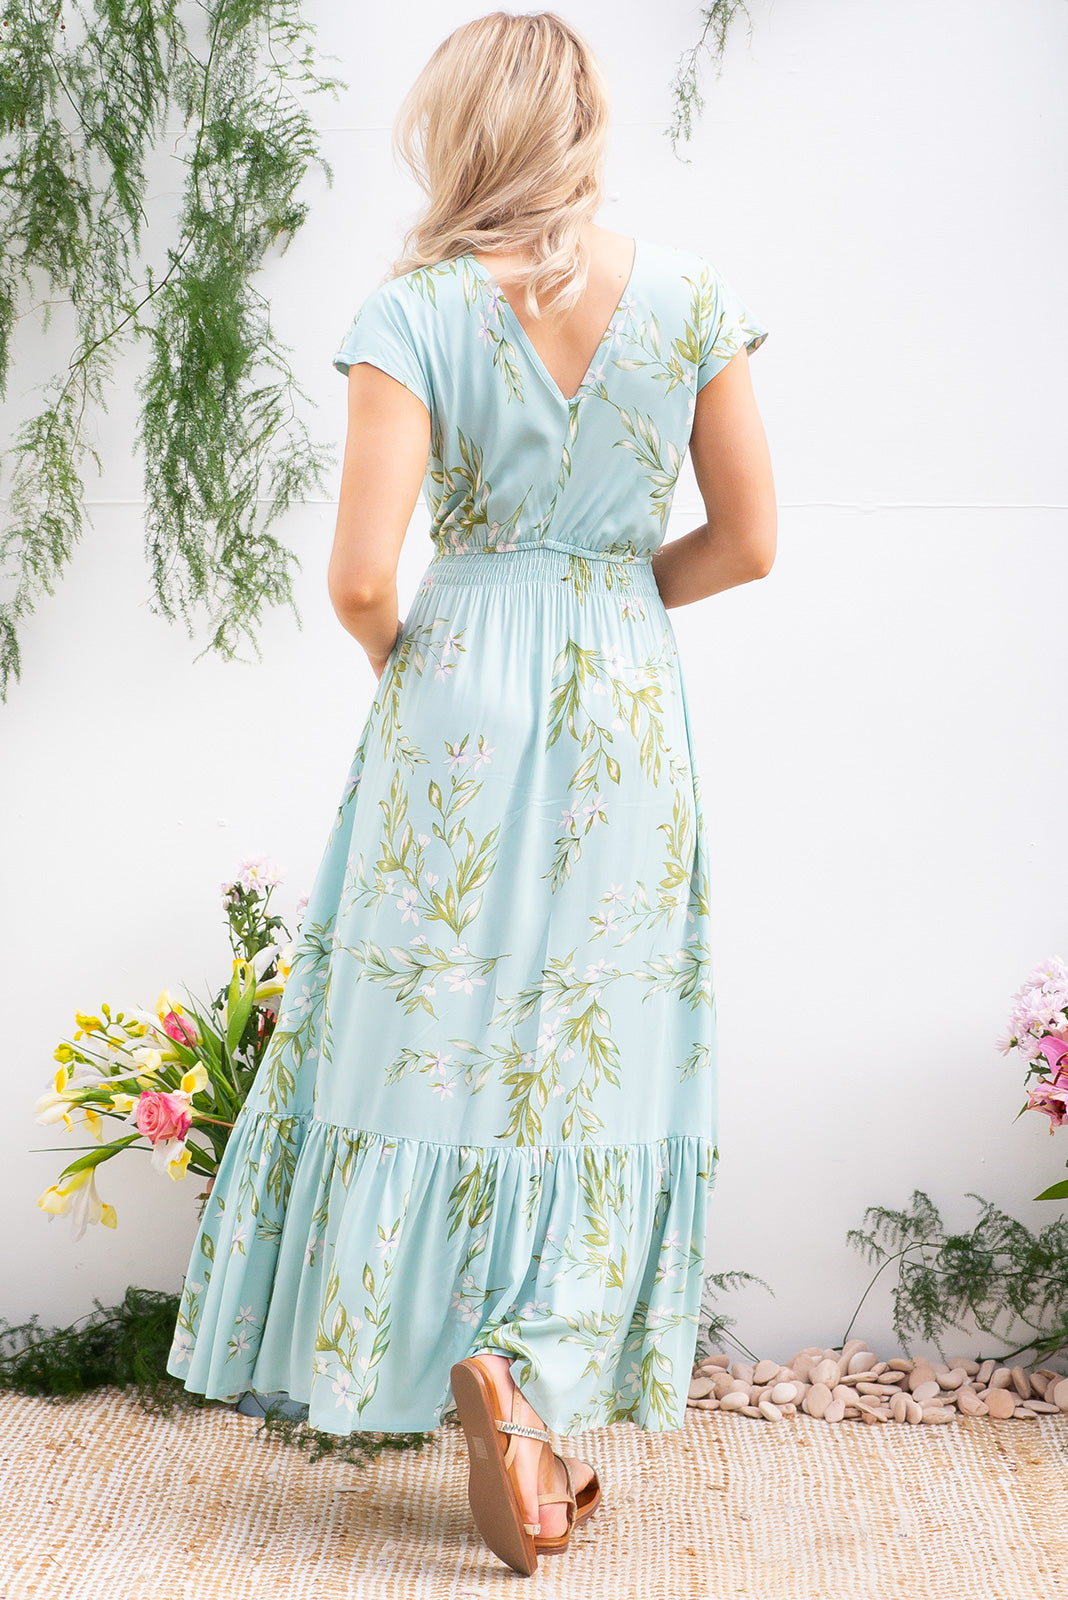 Nellie Snowdrop Aqua Maxi Dress Maxi dress features elasticated empire line with a cap sleeve and deep v neck the fabric is a soft woven rayon in a celadon green based floral print